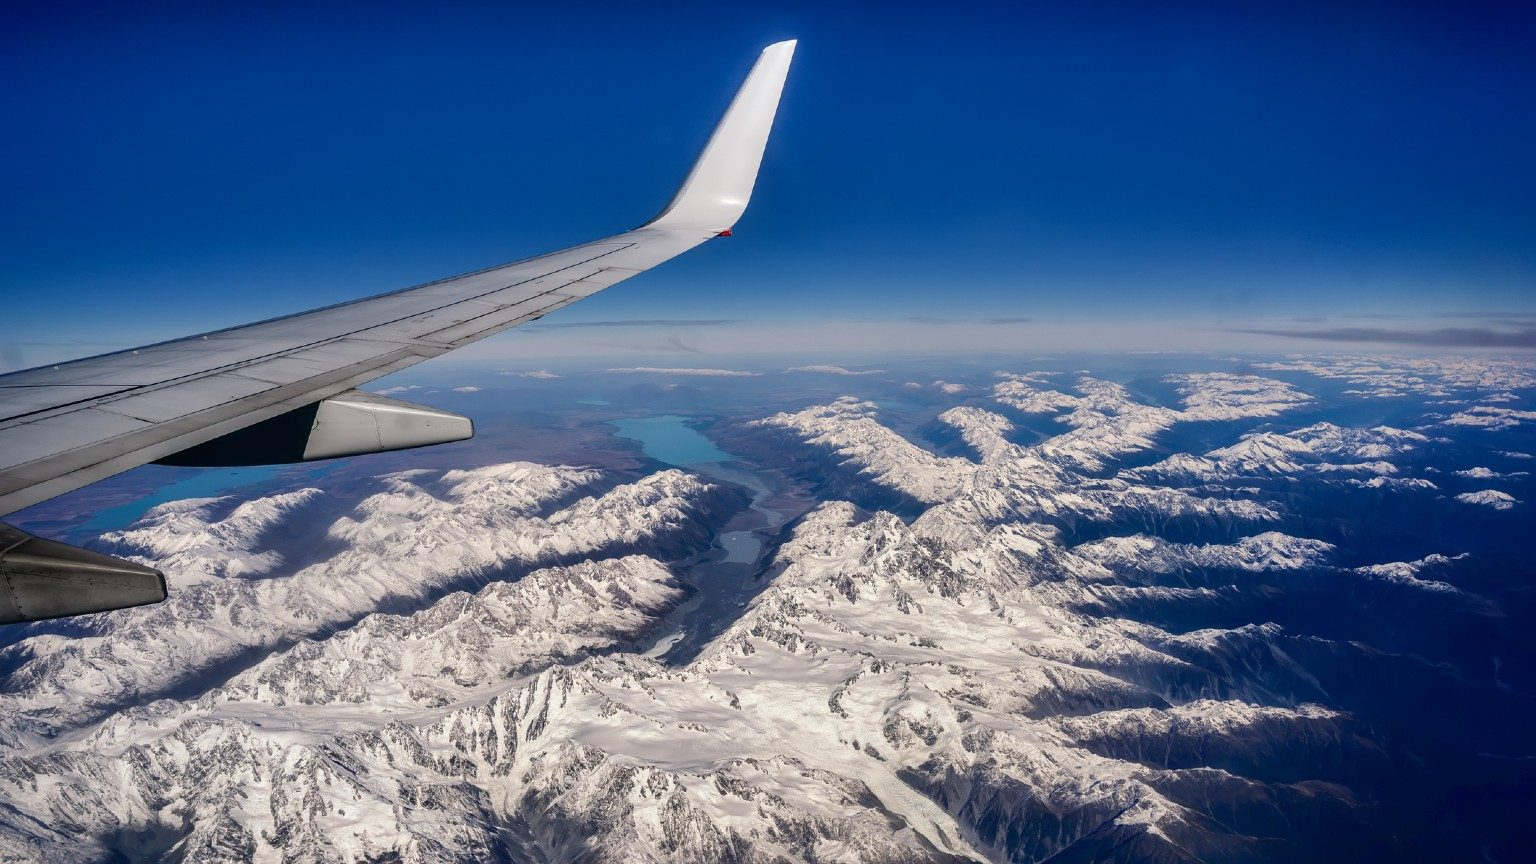 A plane flying over Christchurch's mountains.